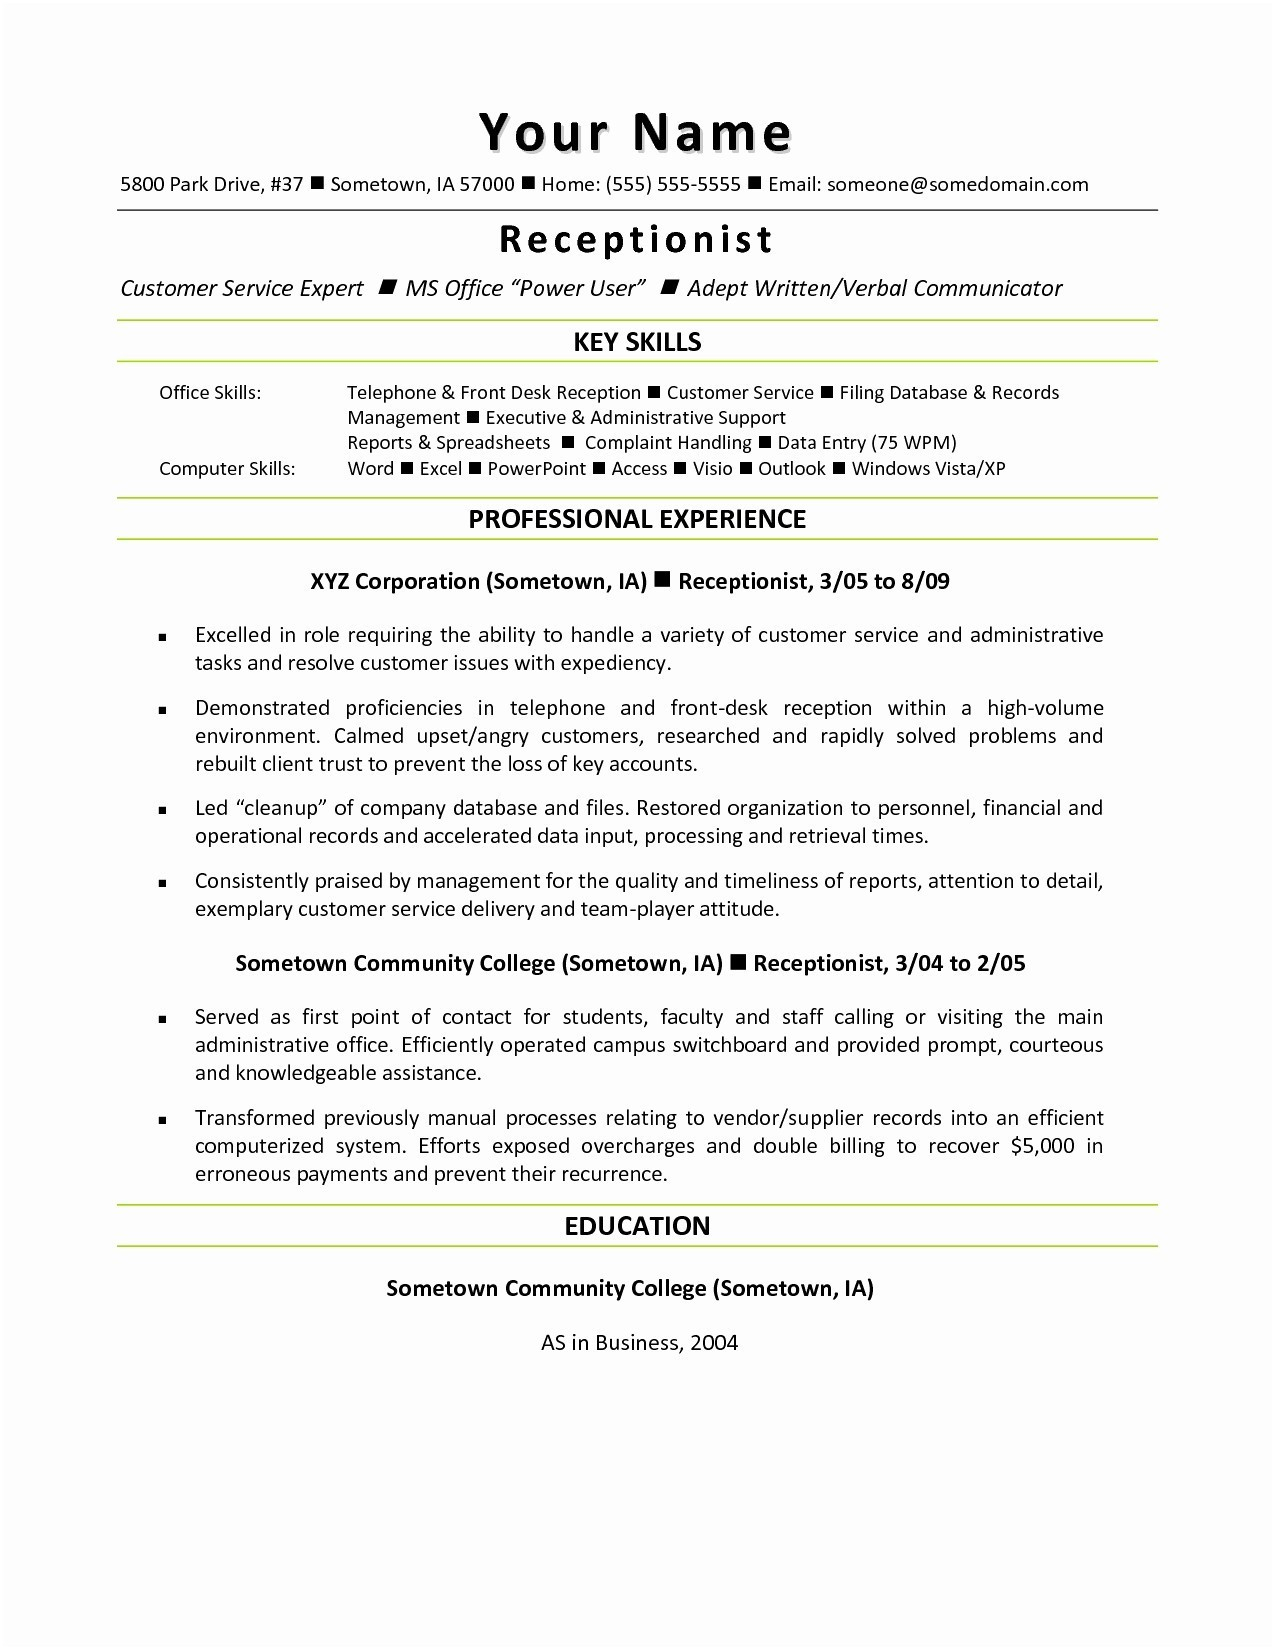 Resume Cover Letter Template Word Free - Resume Microsoft Word Fresh Resume Mail format Sample Fresh